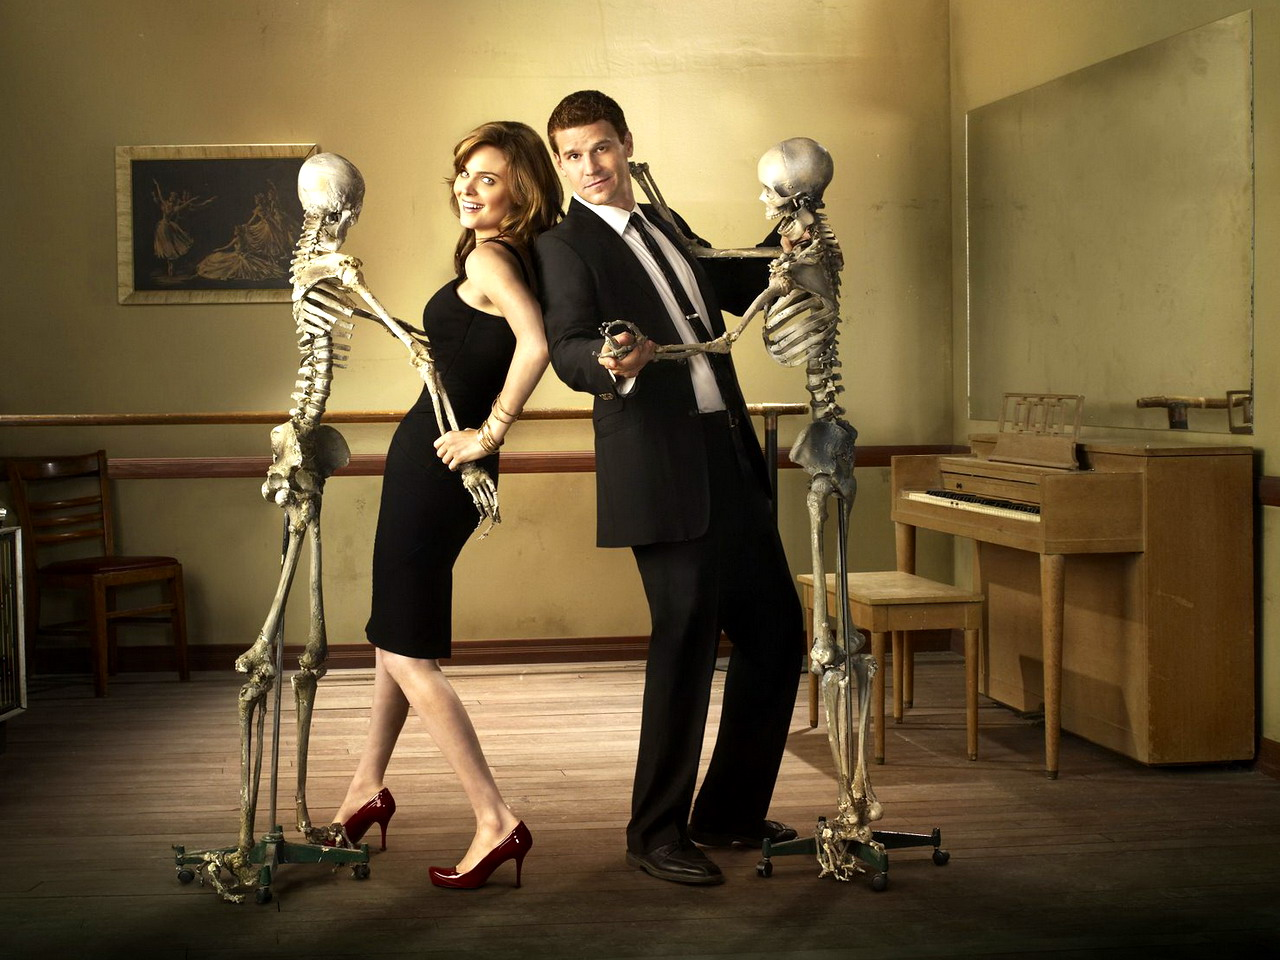 "BONES: Emily Deschanel as Dr. Temperance Brennan (L) and David Boreanaz as FBI Special Agent Seeley Booth (R). The fourth season of BONES premieres with a special two-hour episode ""Yanks in the U.K."" (parts 1 and 2) airing Wednesday, Sept. 3 (8:00-10:00 PM ET/PT) on FOX. ©2008 Fox Broadcasting Co Cr: Eric Ogden/FOX"